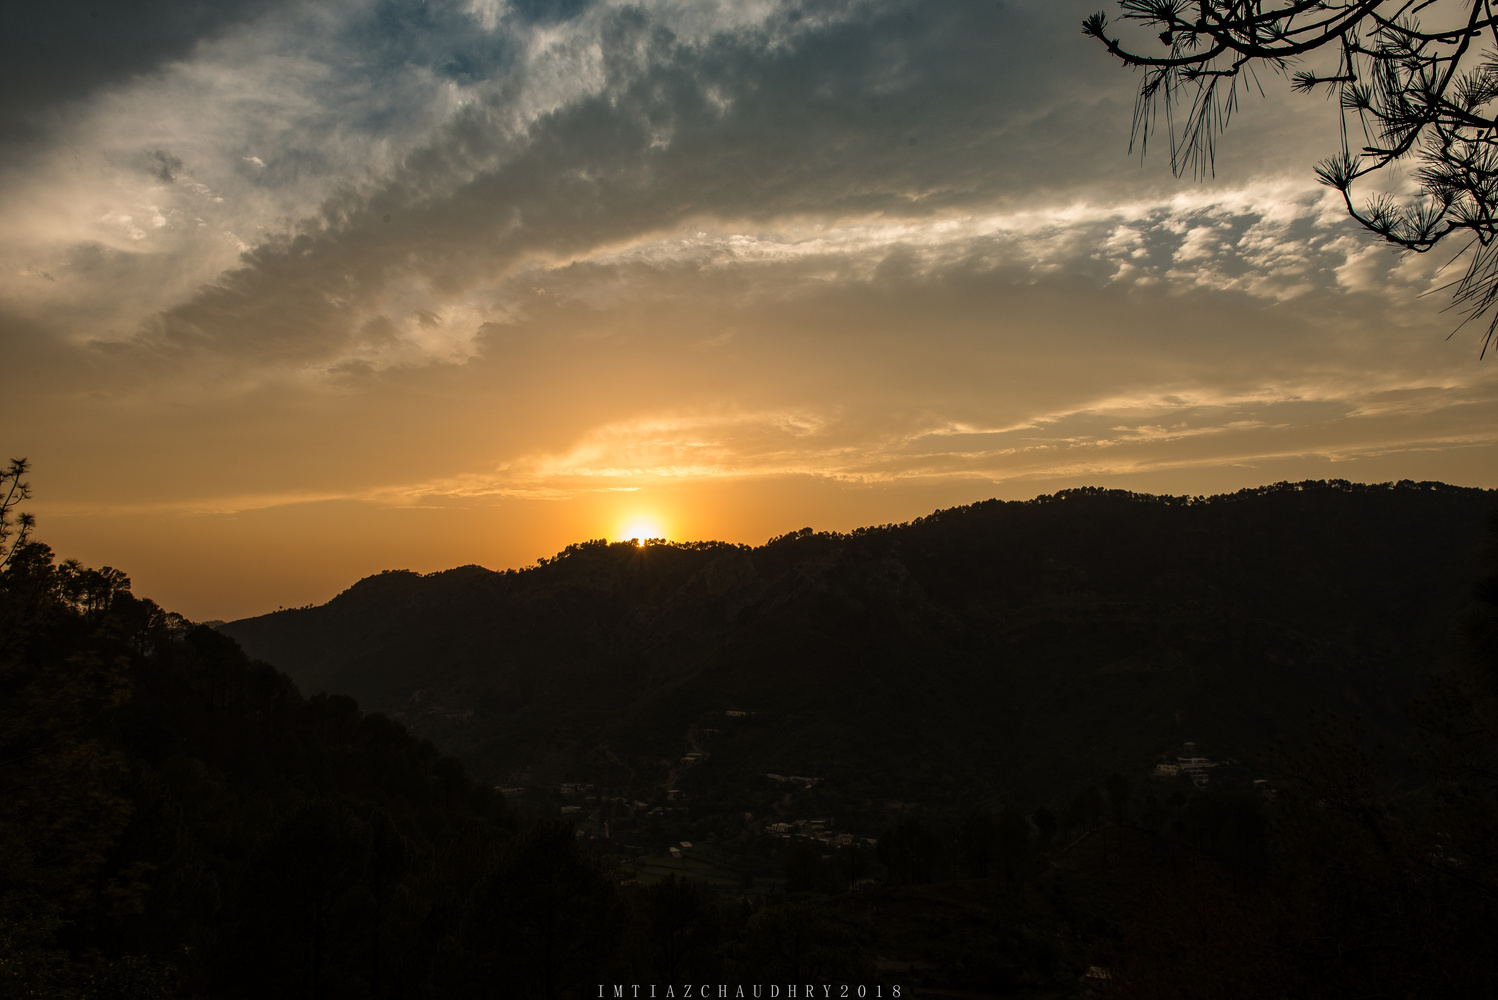 Sunset by imtiaz chaudhry